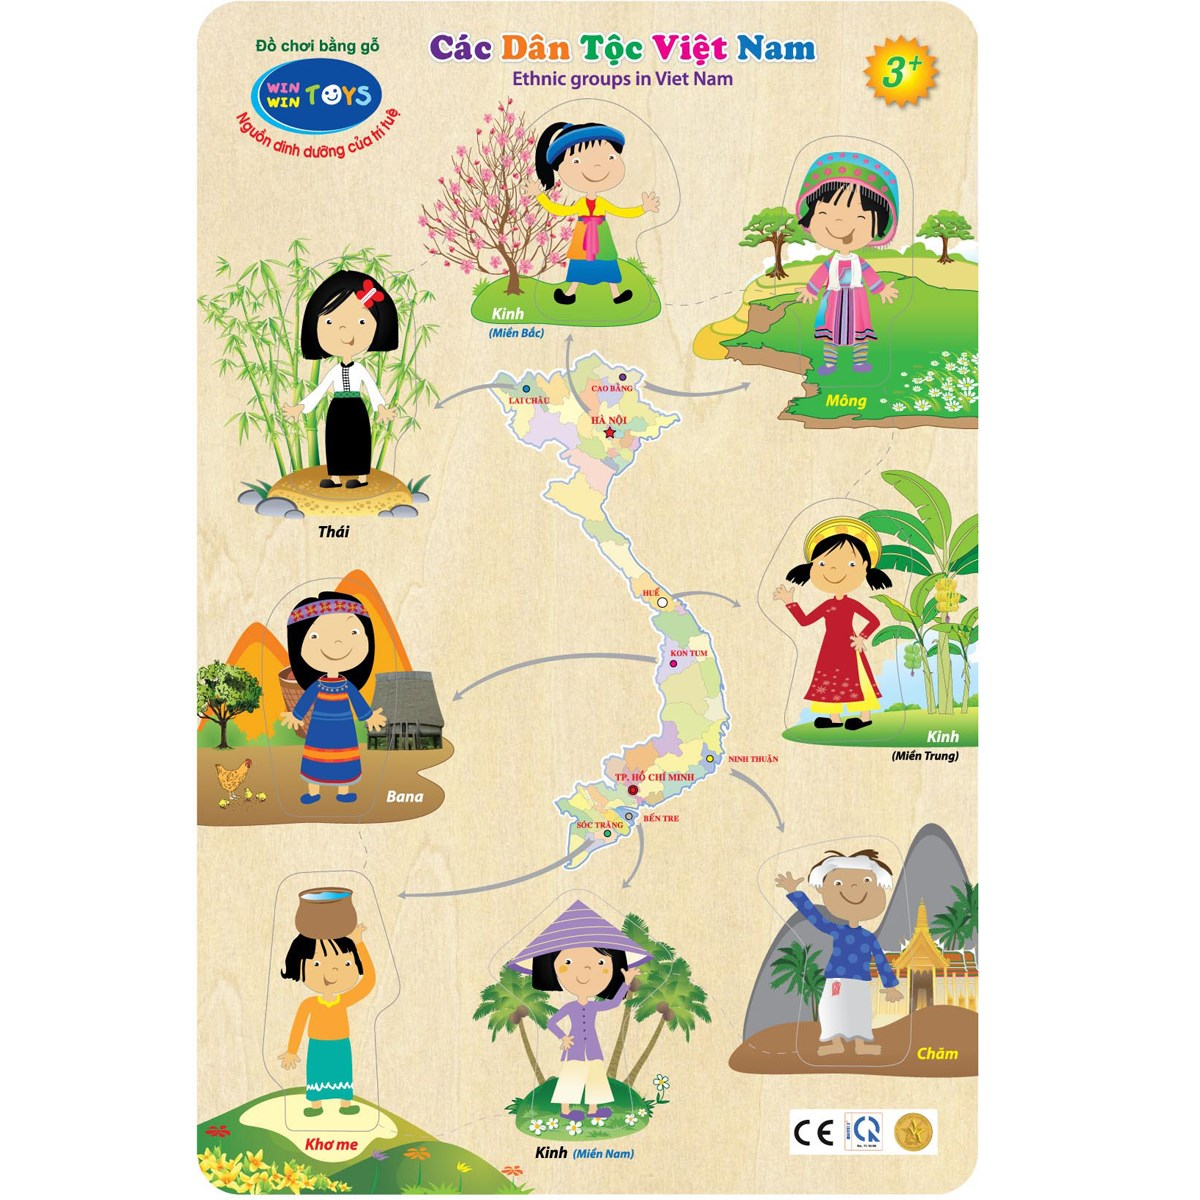 Do choi go Winwintoys 66332 - Cac dan toc Viet Nam